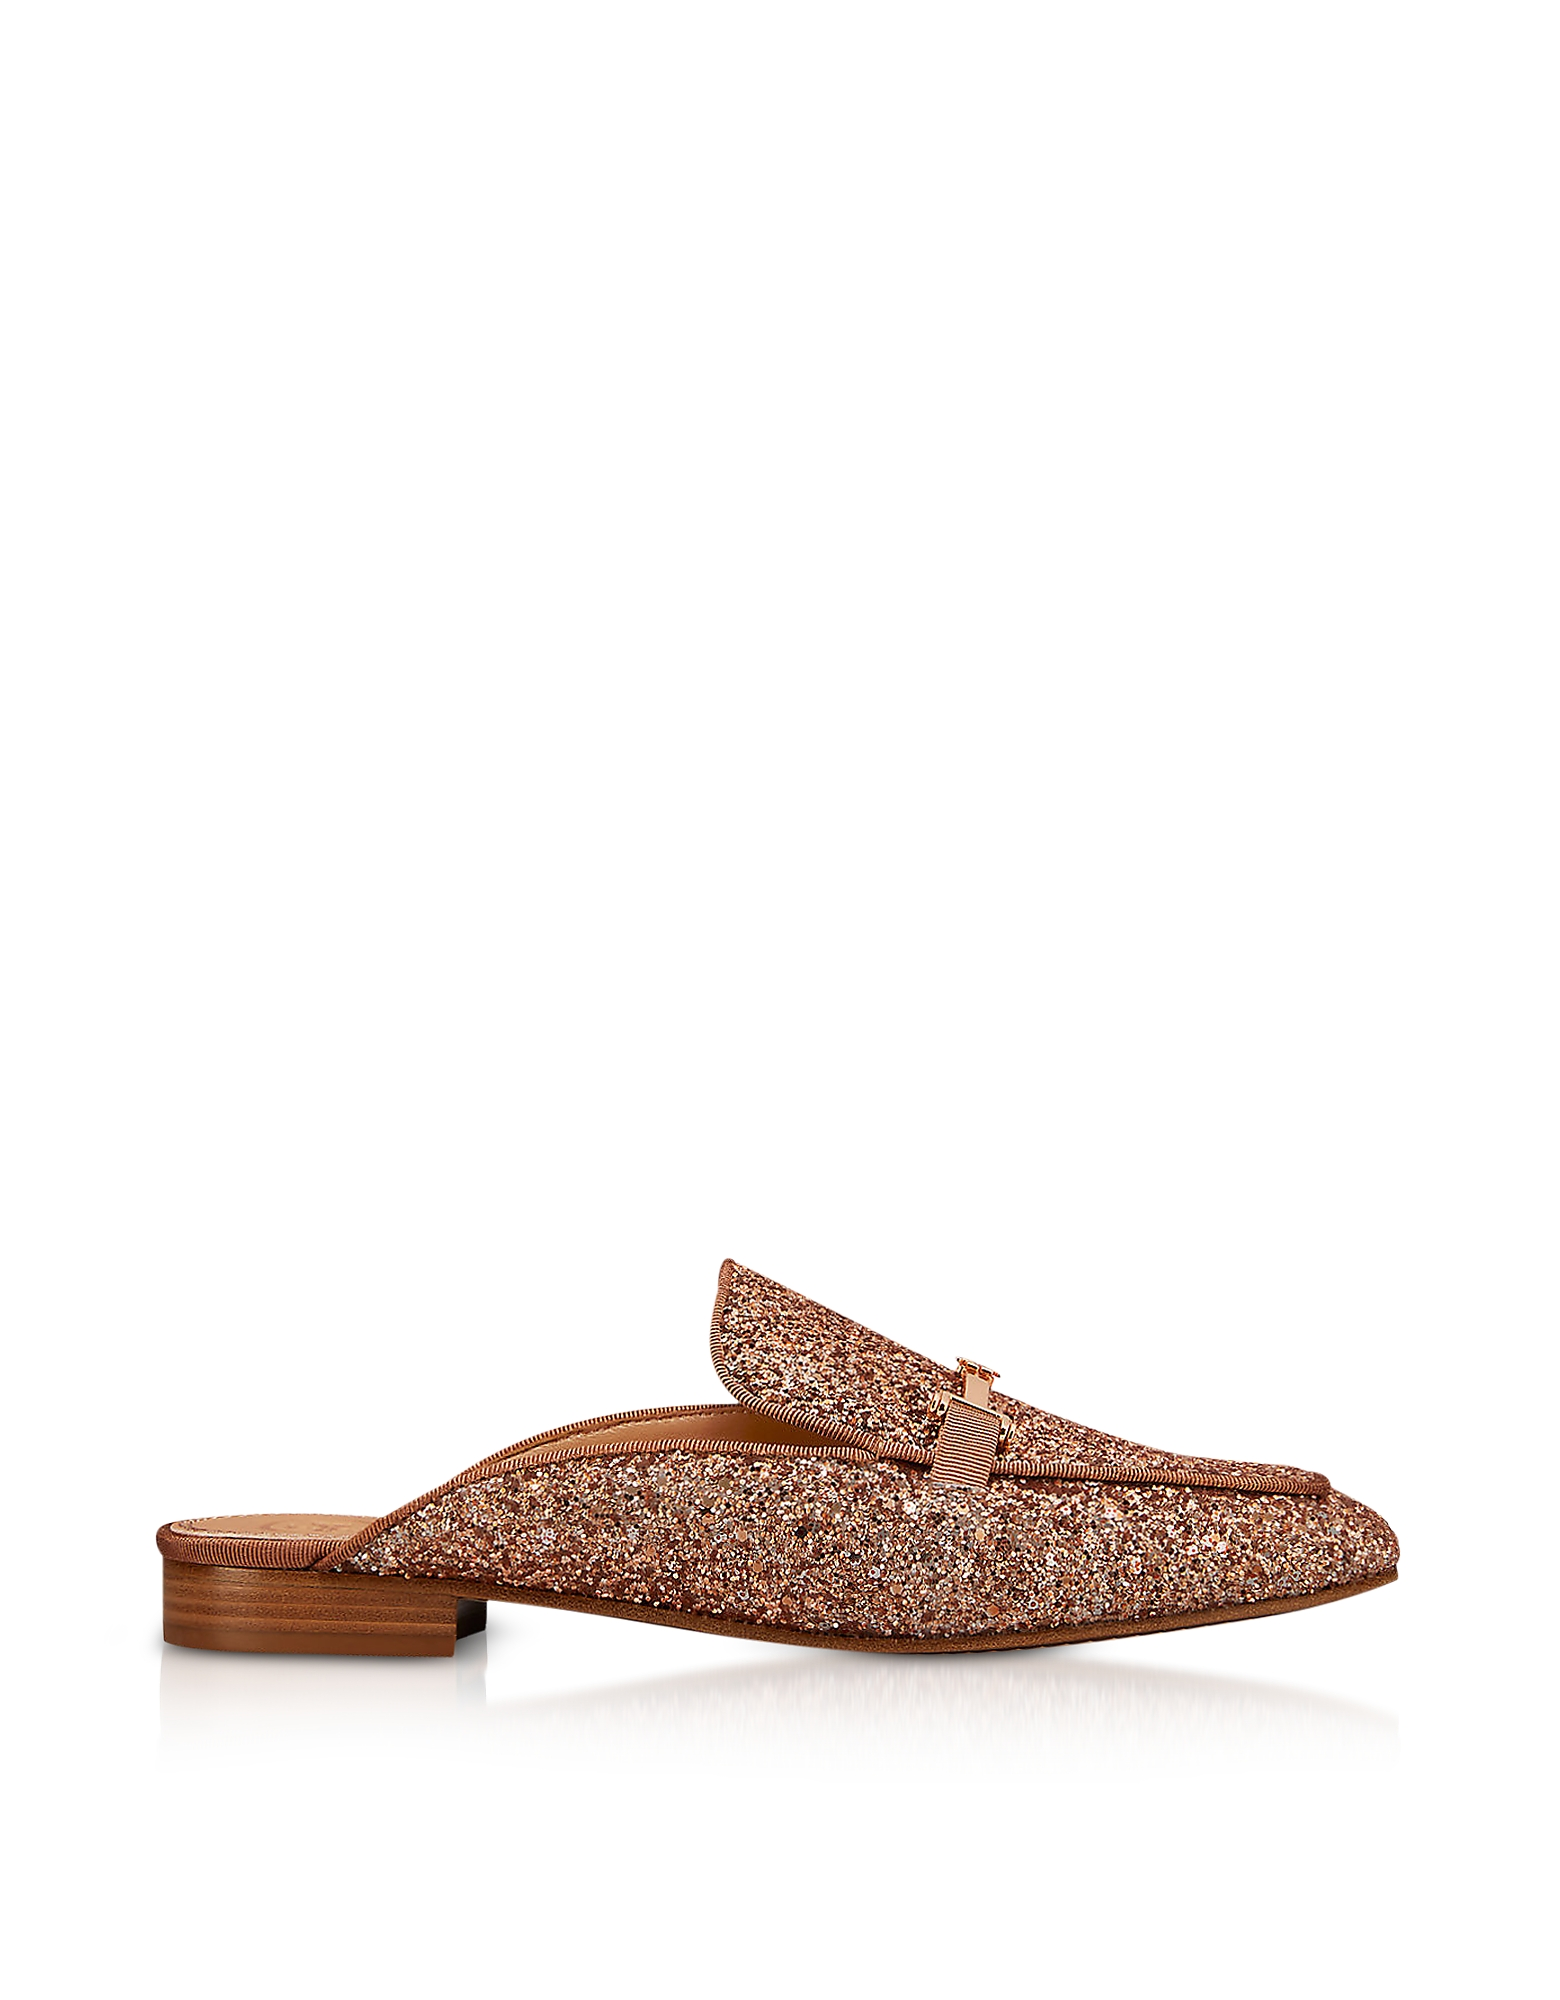 Tory Burch Shoes, Amelia Glitter Rose Gold Mules